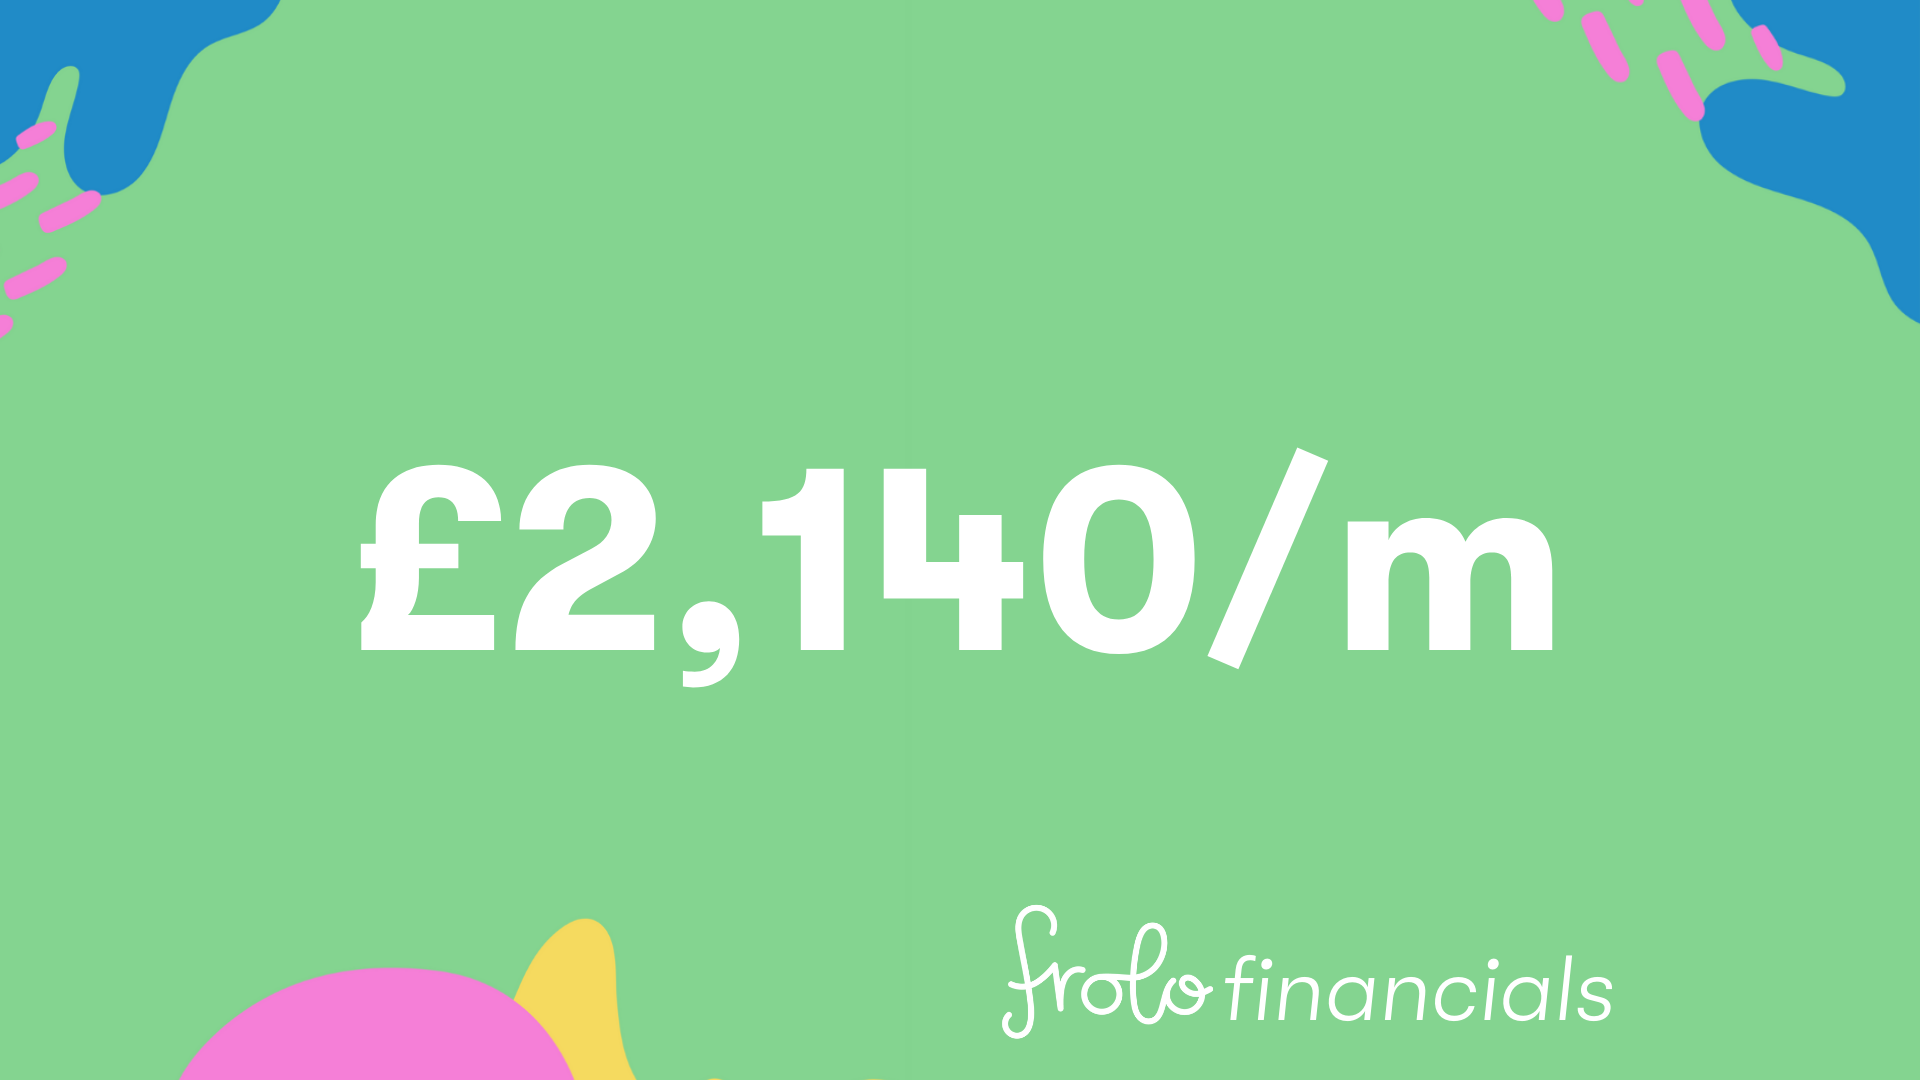 Frolo Financials: Co-parenting mum working part-time